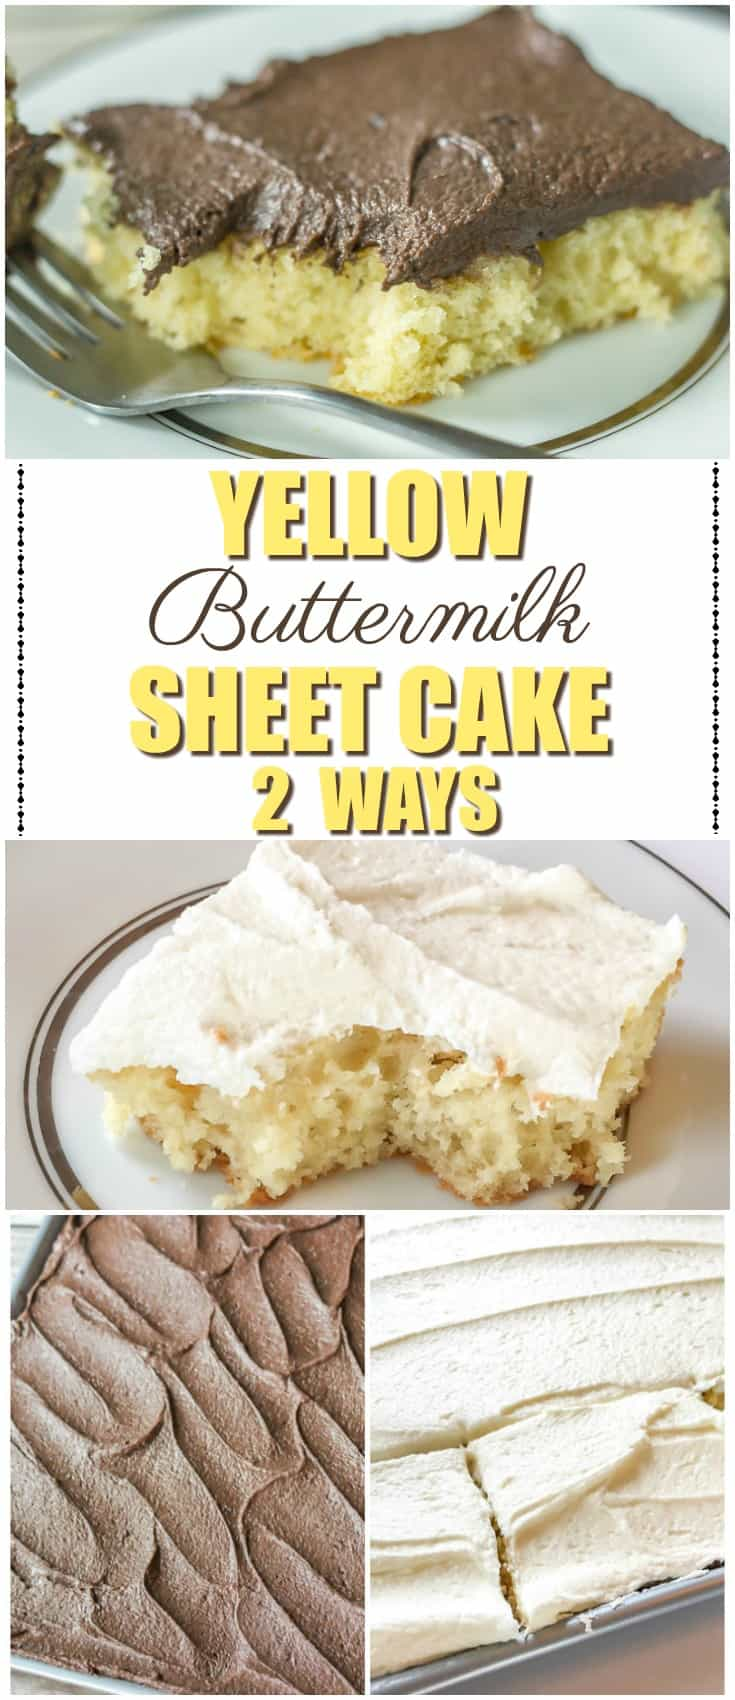 Yellow Buttermilk Sheet Cake 2 Ways I Scream For Buttercream